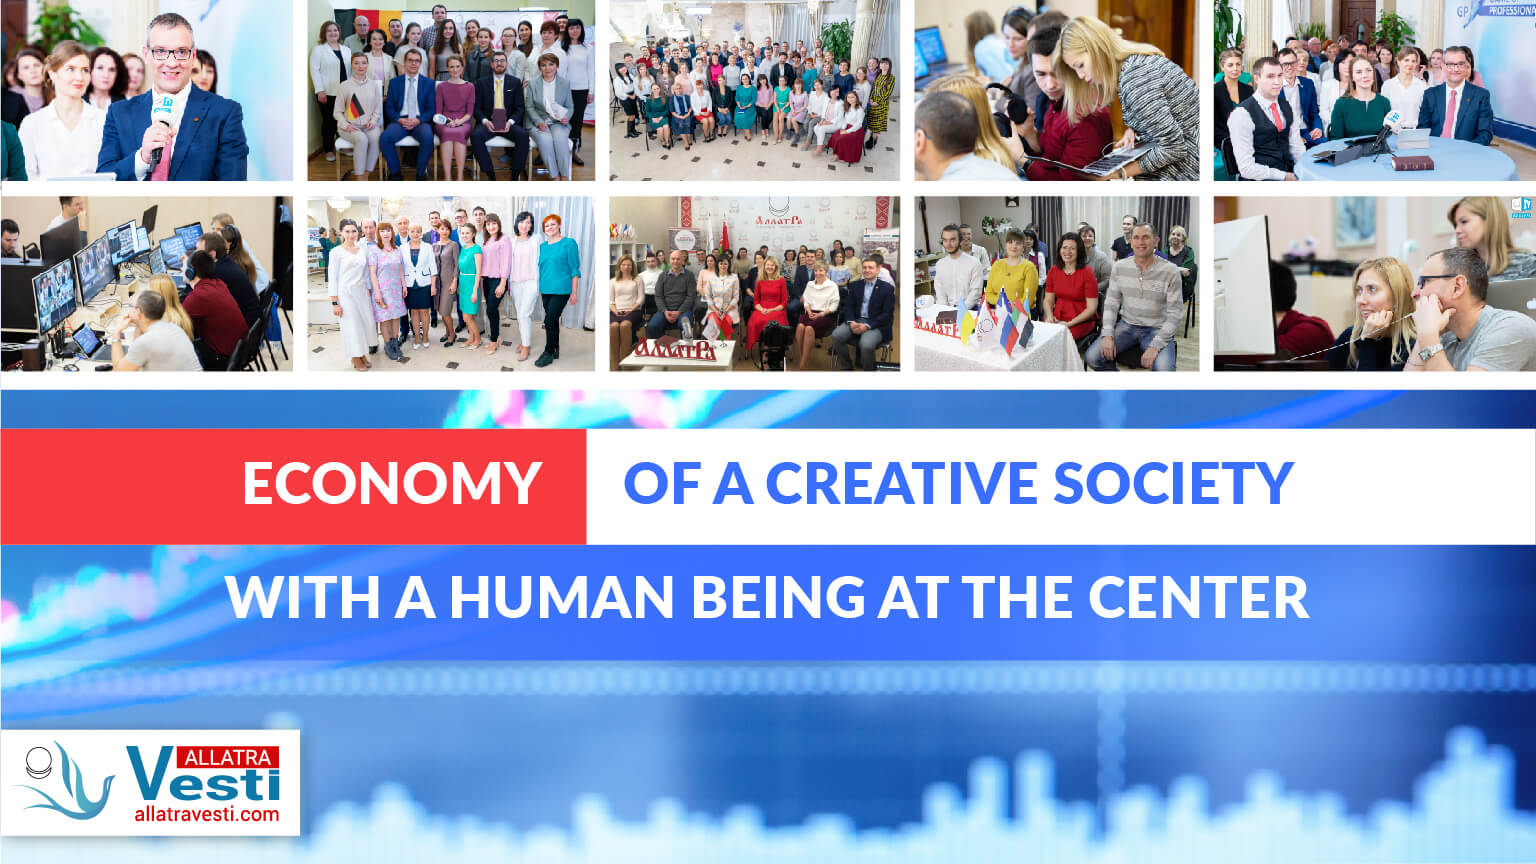 <mark><b>CREATIVE</b></mark>  AND CONSTRUCTIVE ECONOMY MODEL – A HUMAN BEING AT THE CENTER